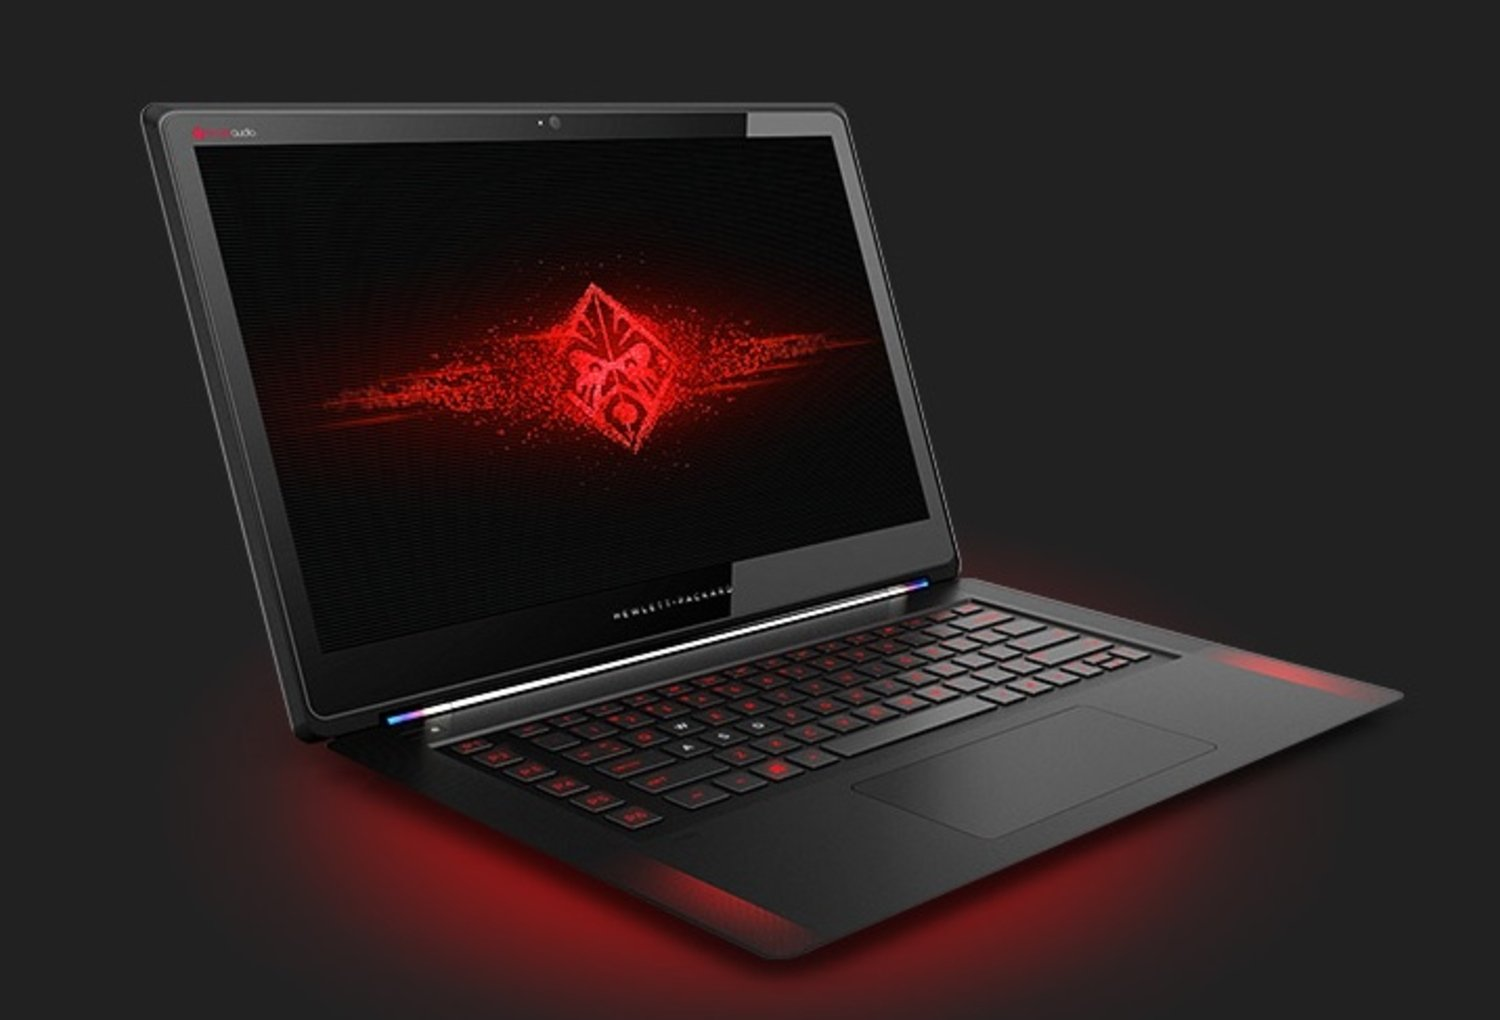 5 Awesome Gaming Laptops You Should Consider